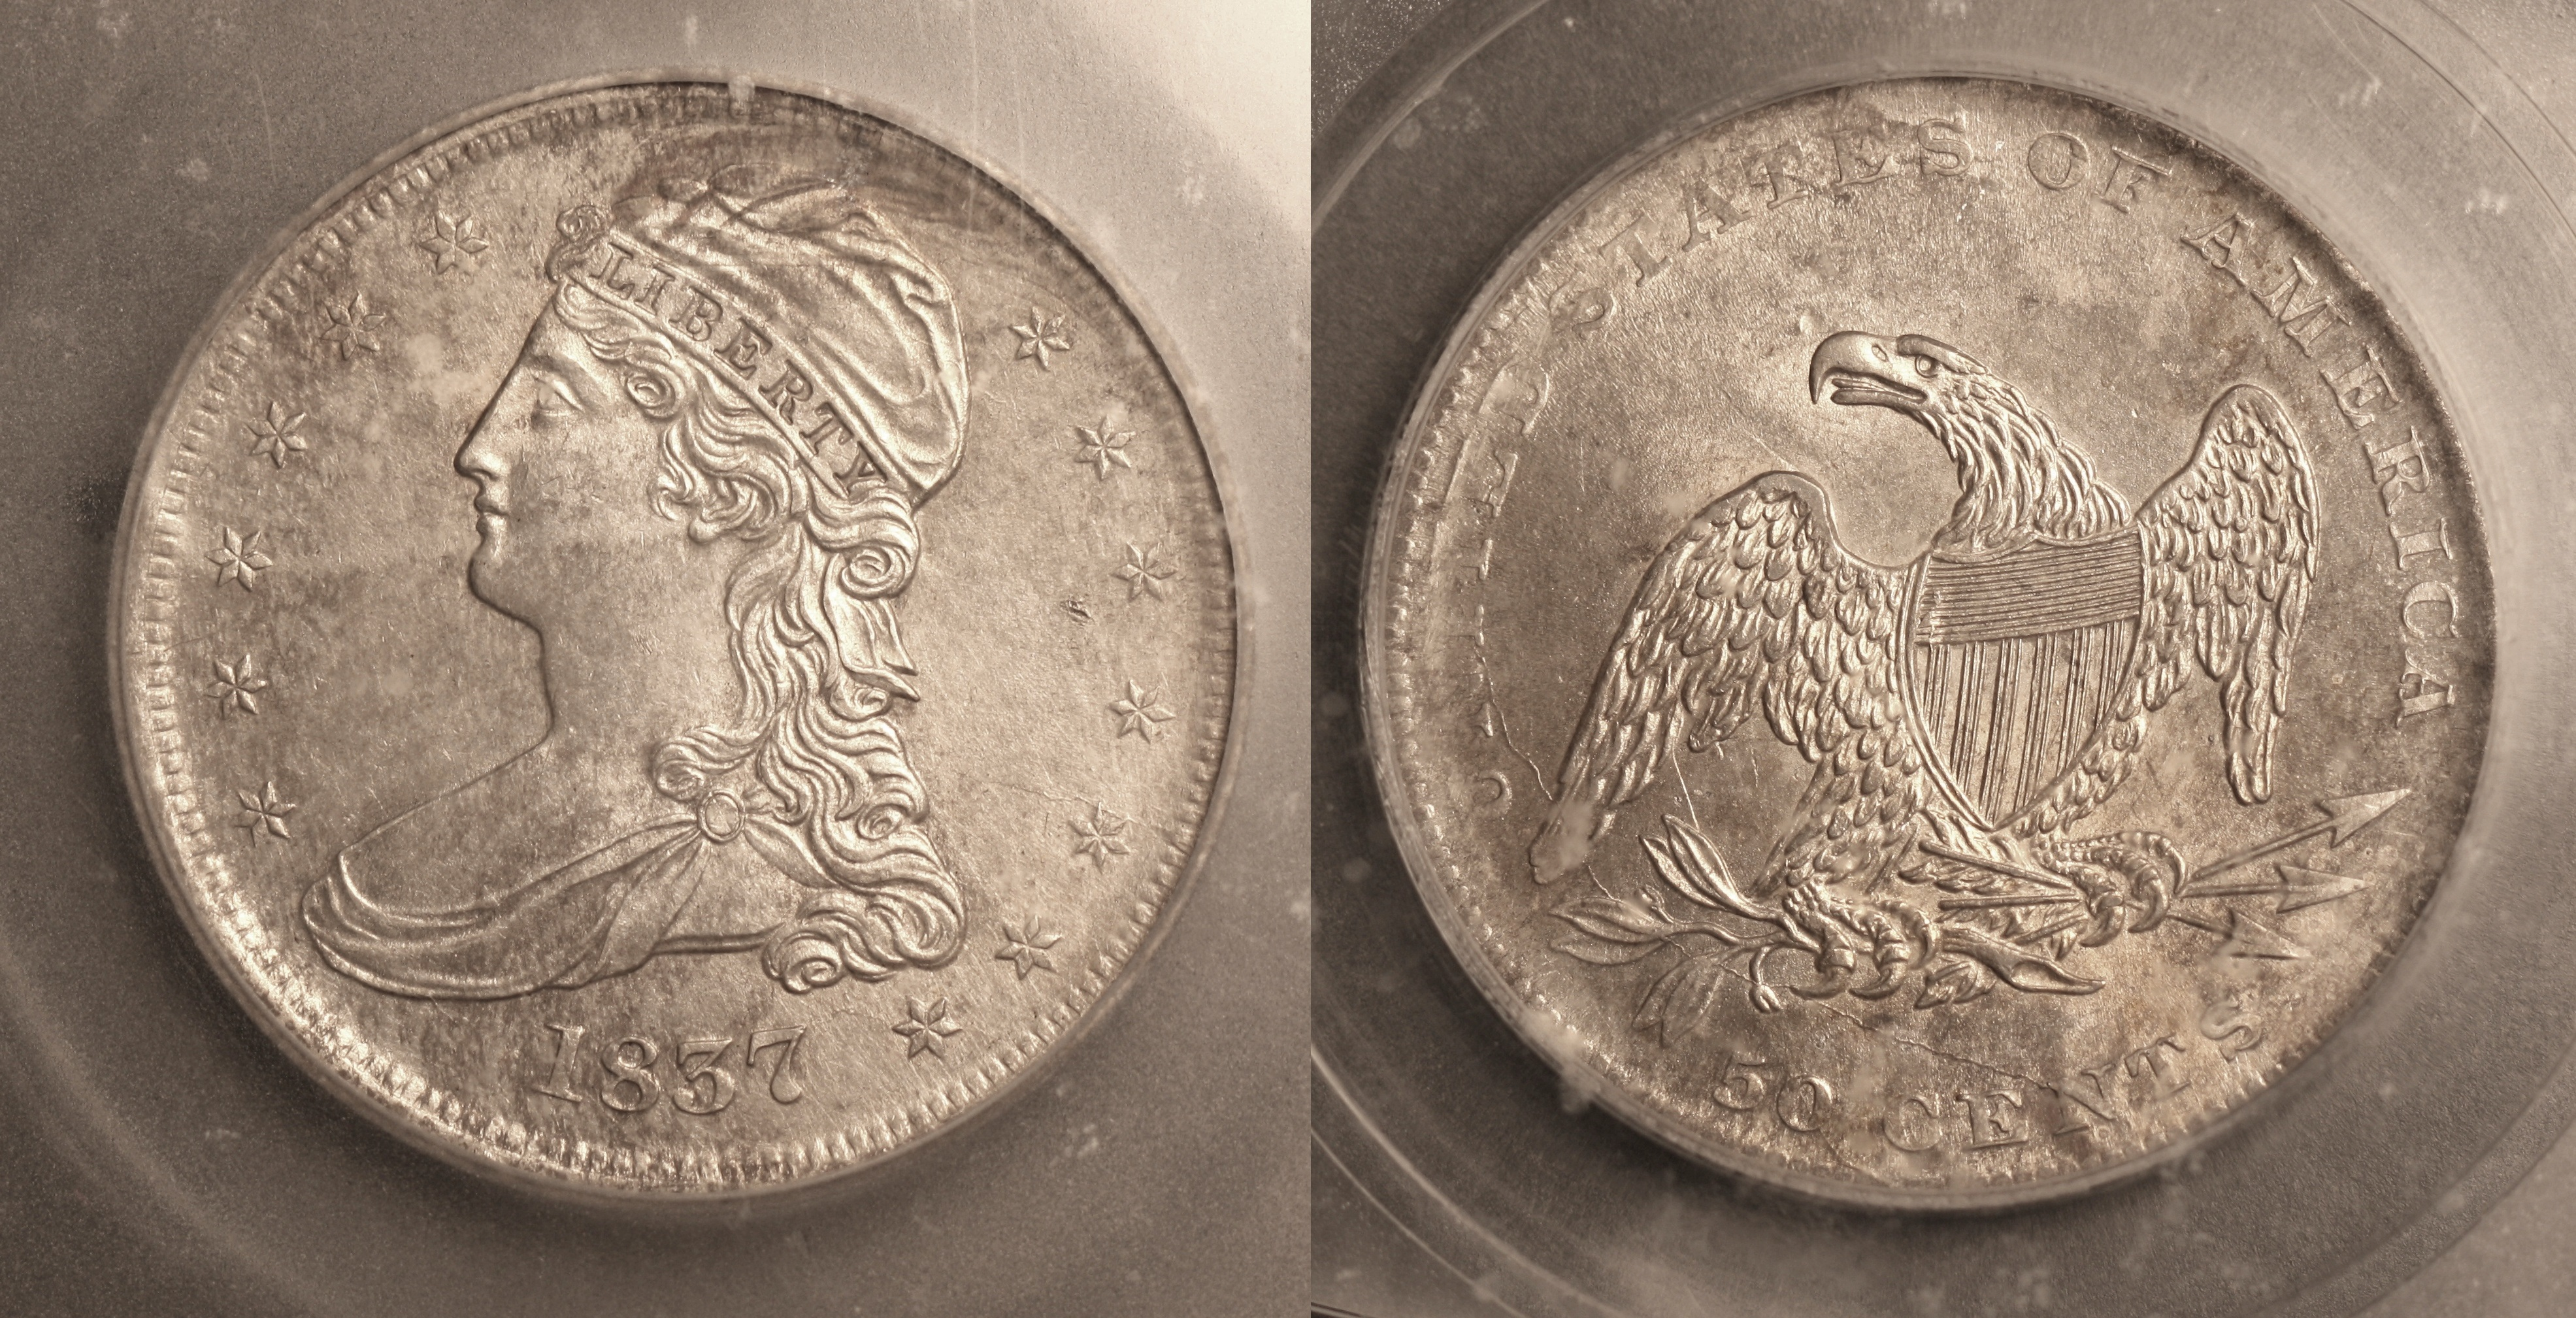 1837 Reeded Edge Capped Bust Half Dollar ICG MS-63 camera